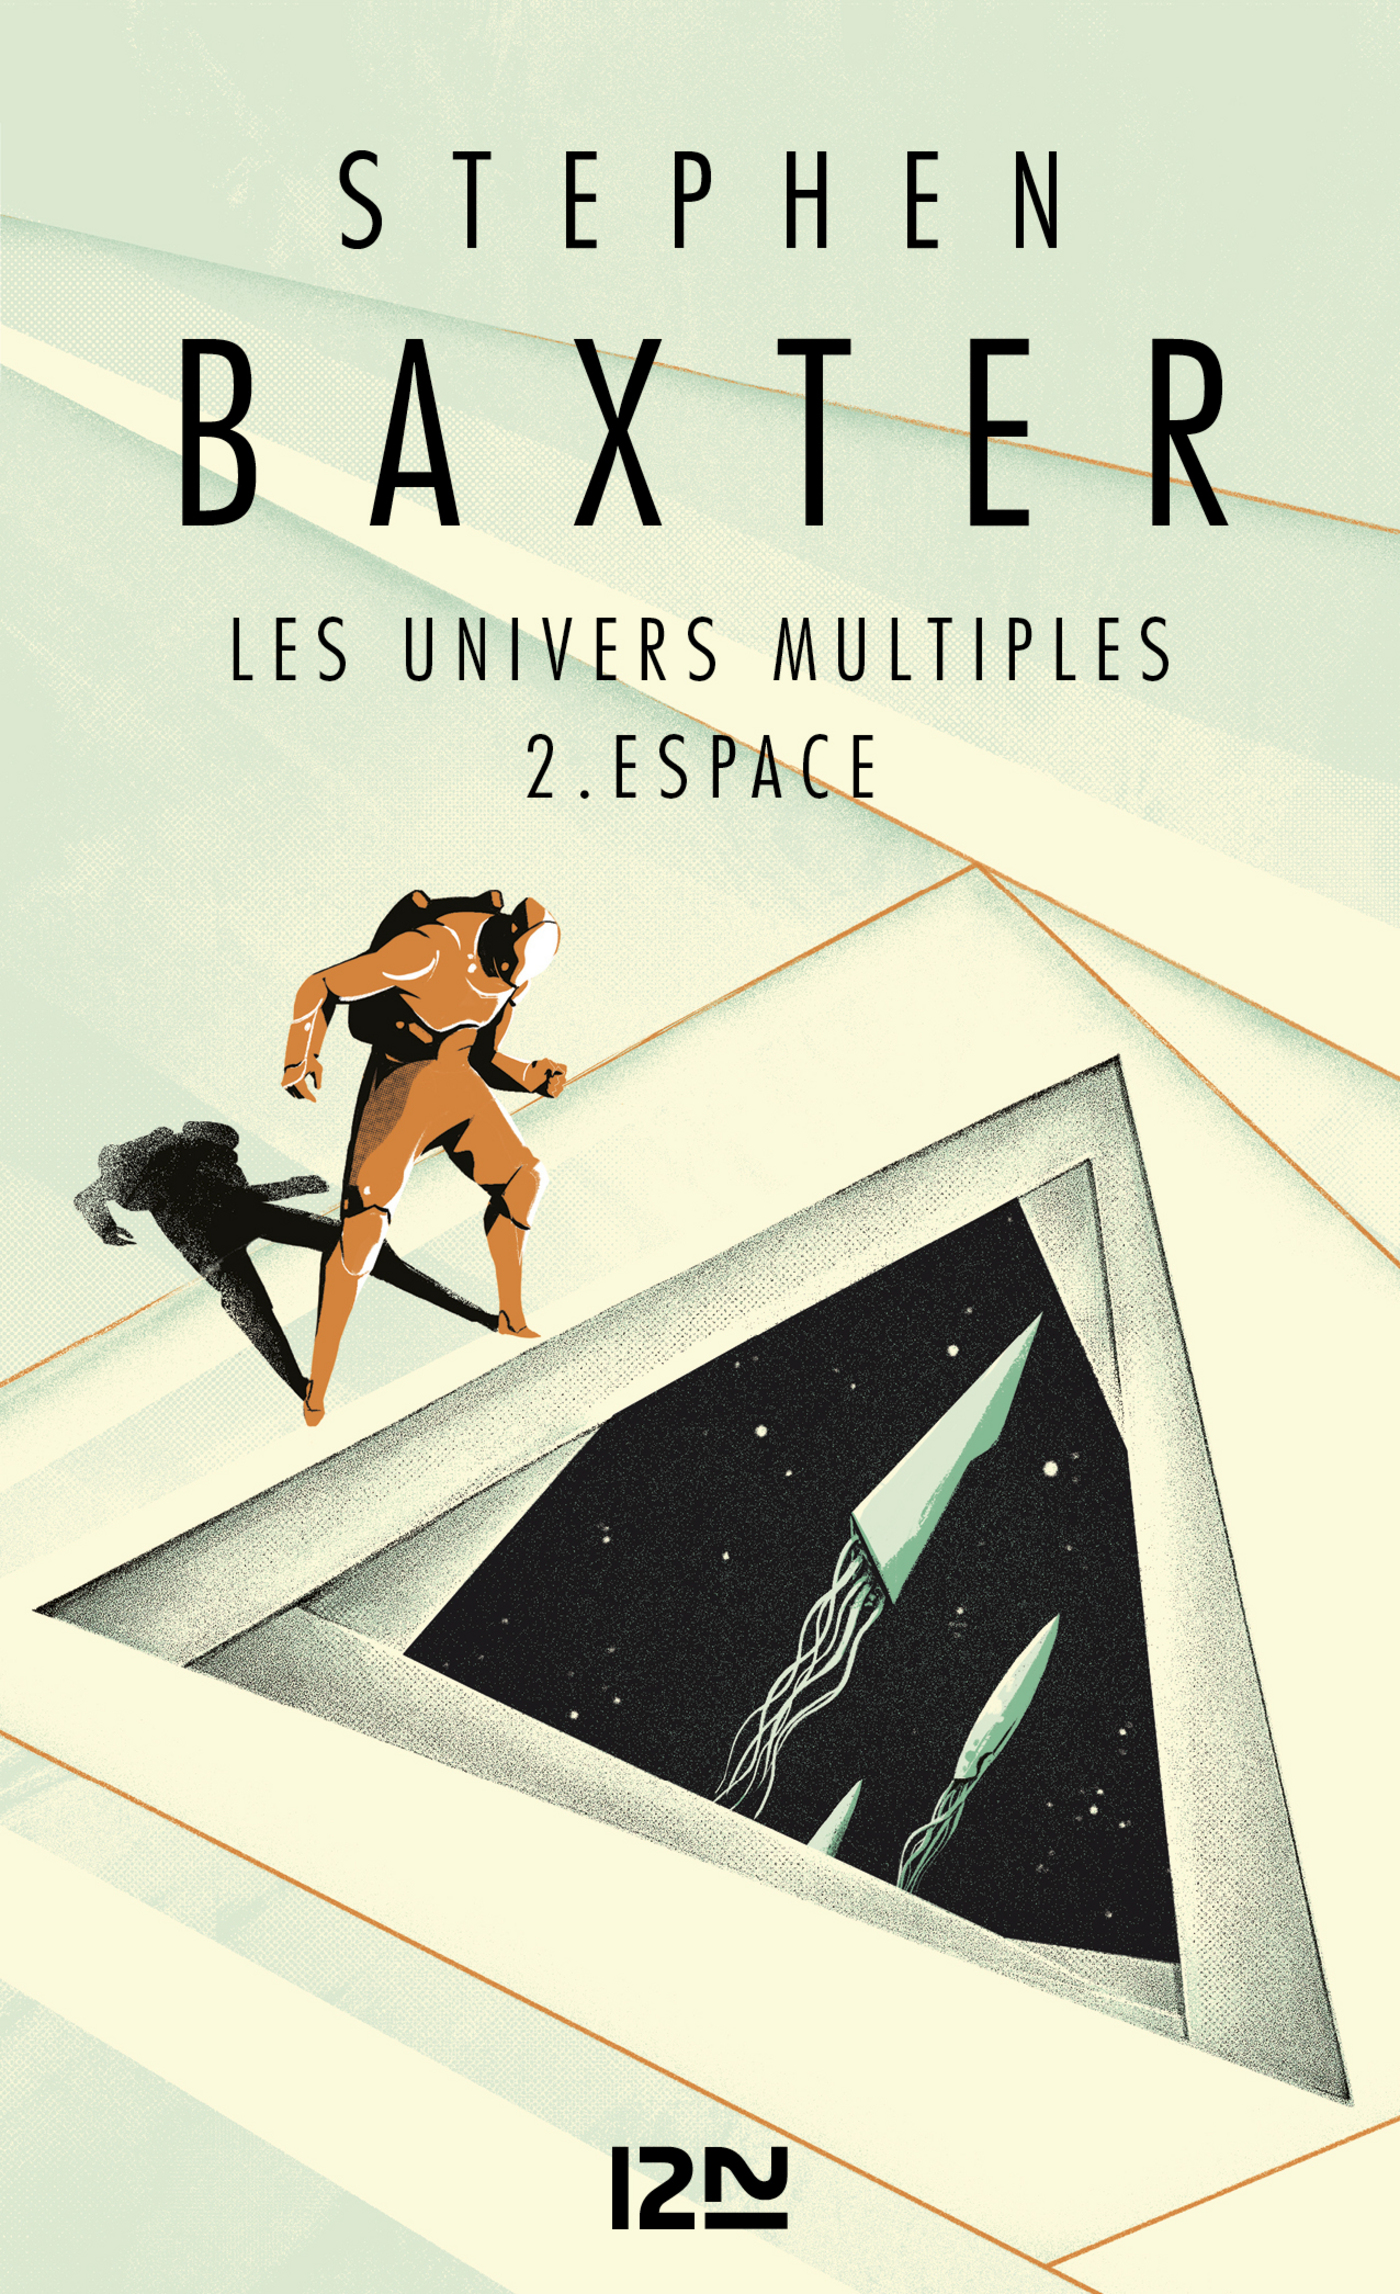 Les univers multiples 2